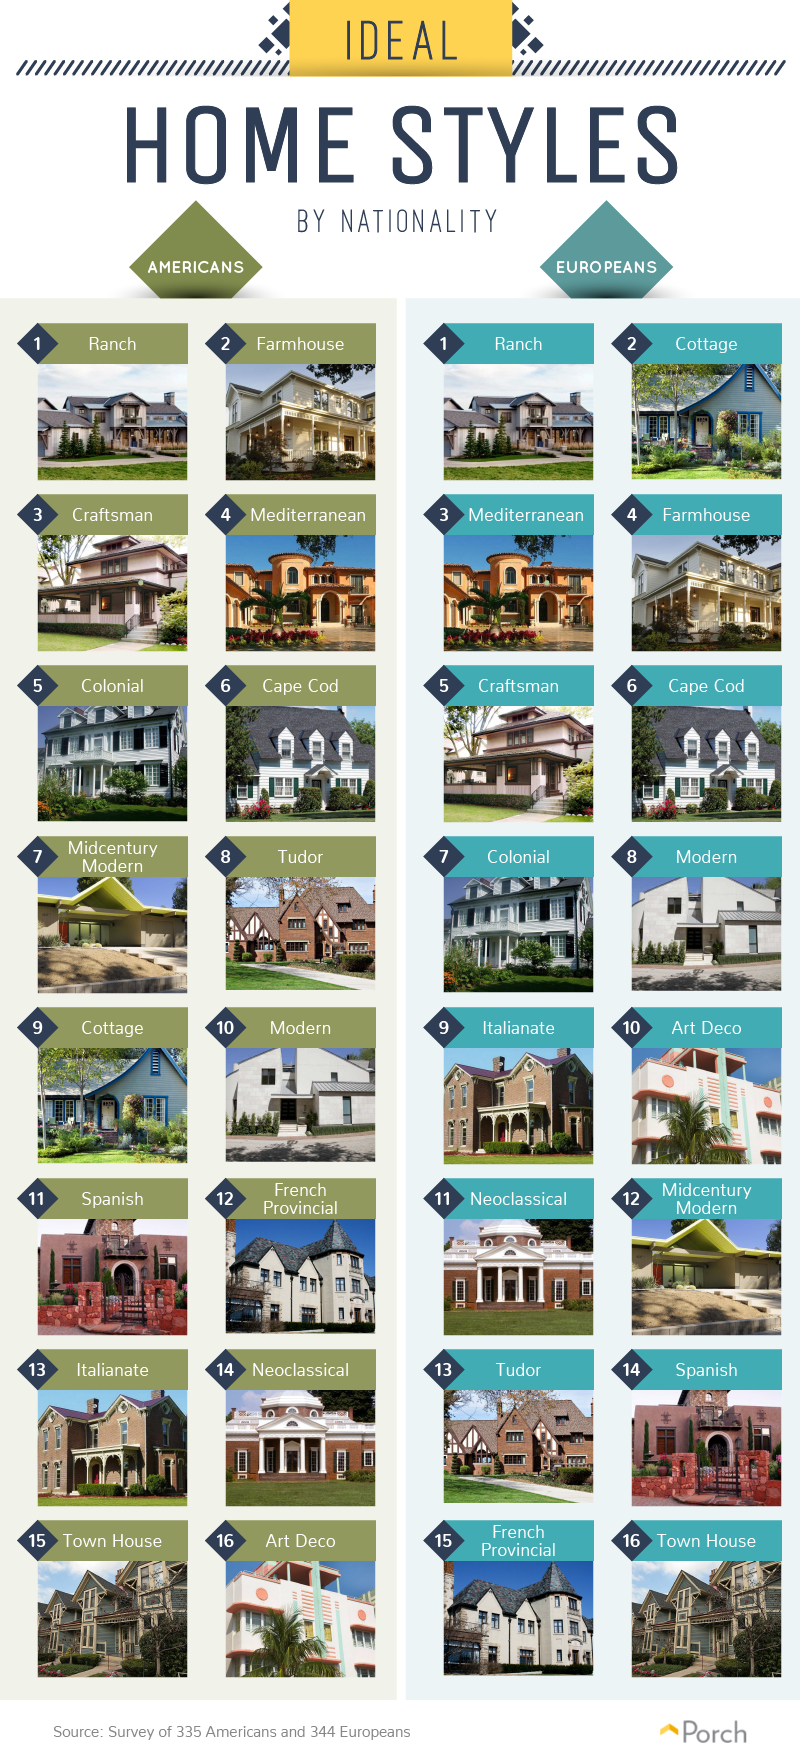 The ideal home styles, by nationality